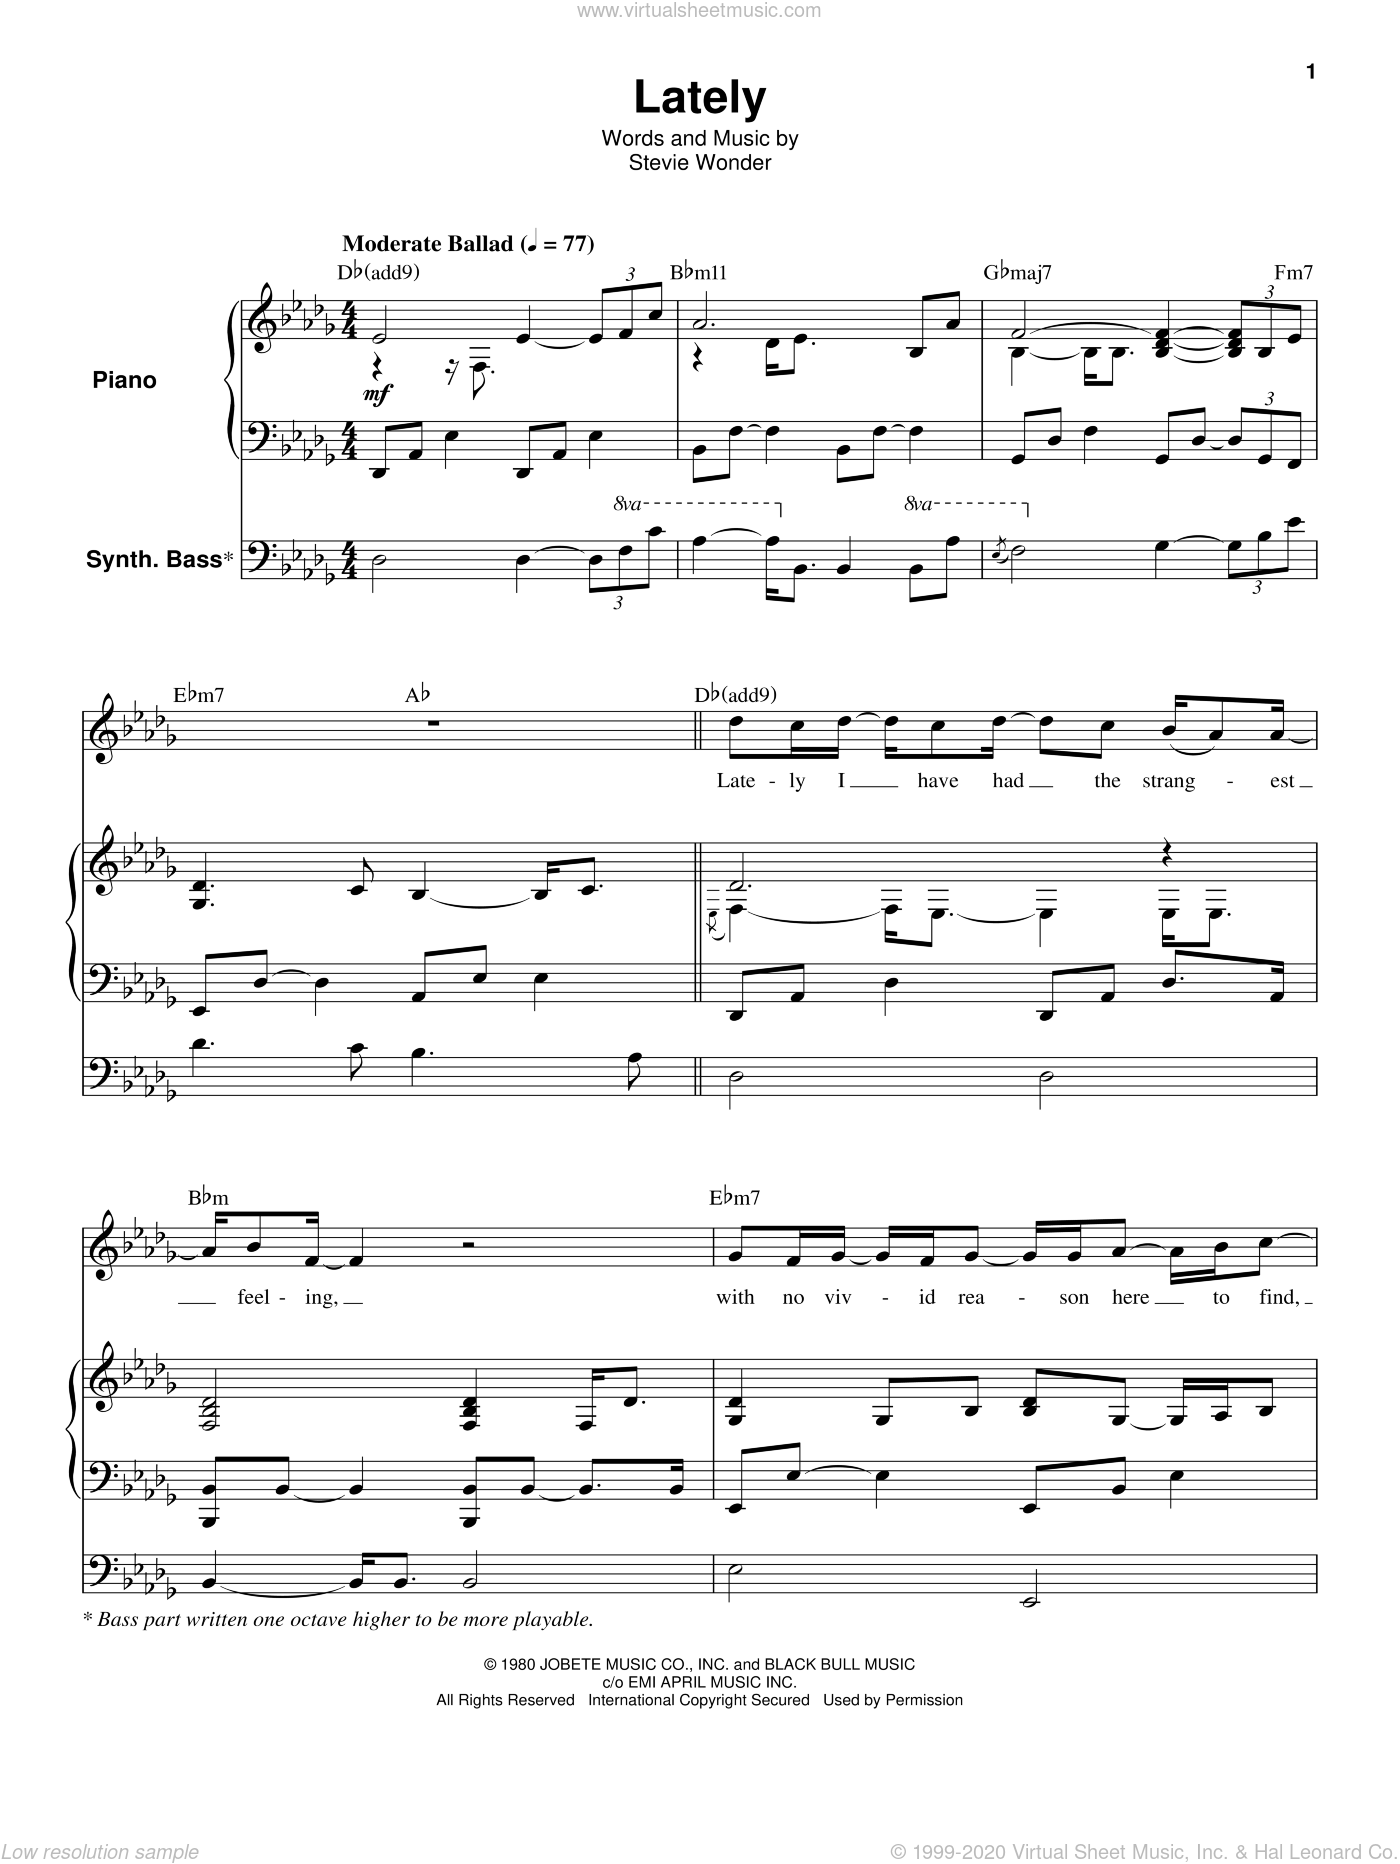 Lately sheet music for keyboard or piano by Stevie Wonder, intermediate skill level